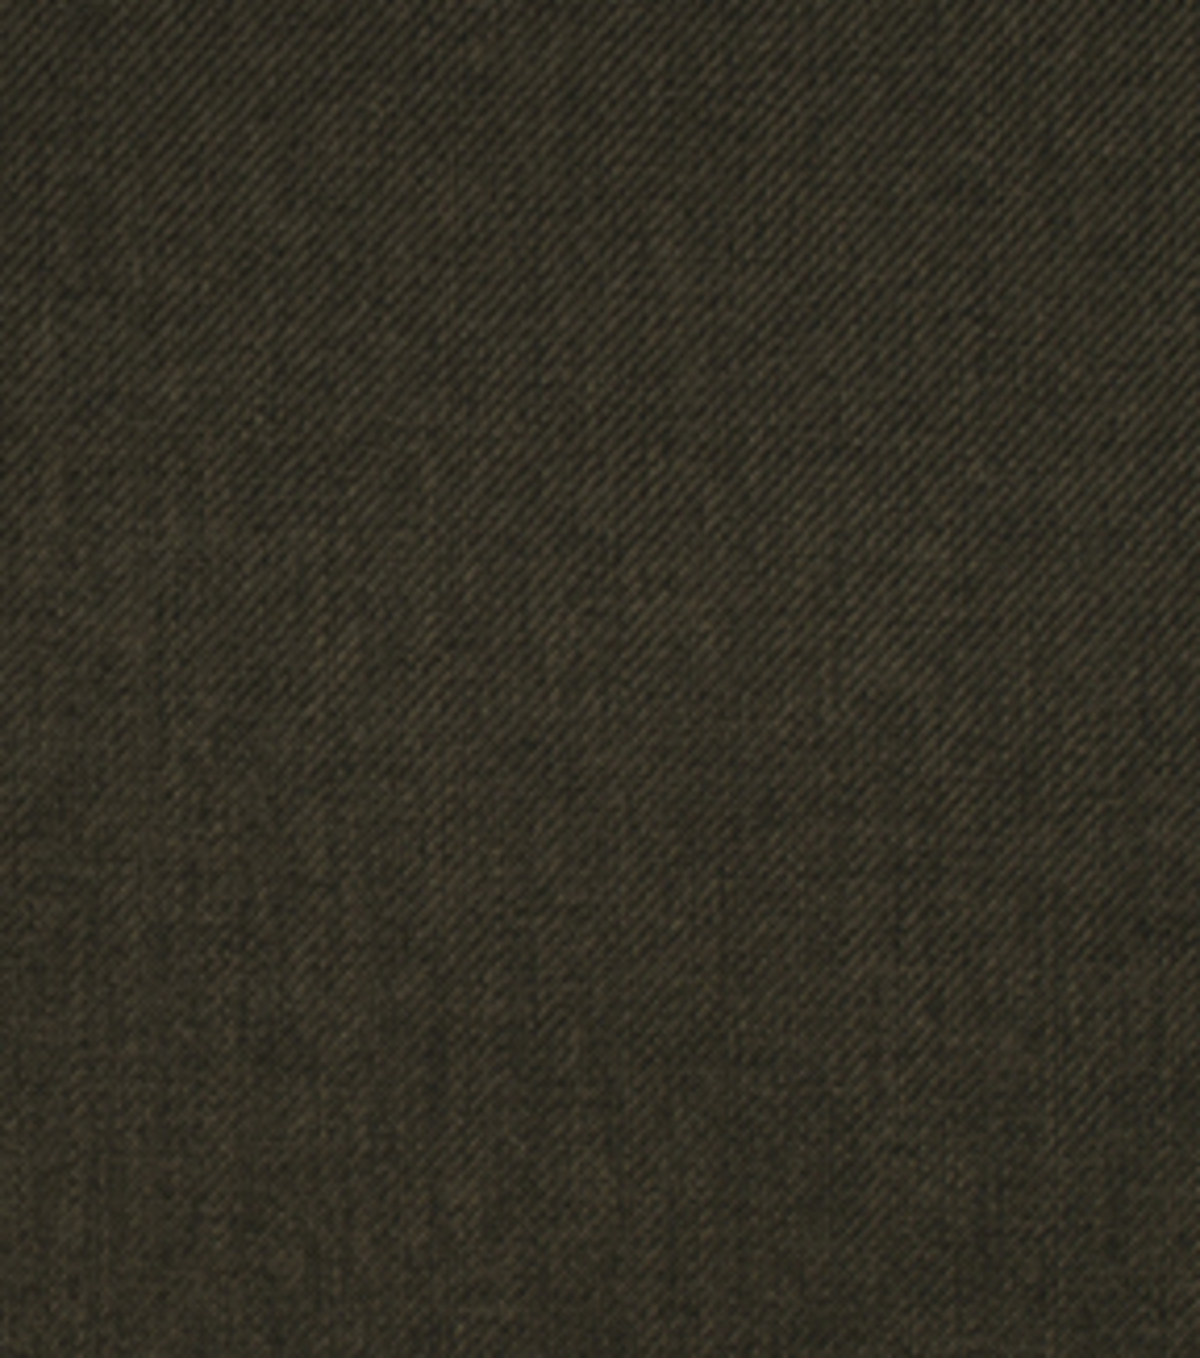 Home Decor 8\u0022x8\u0022 Fabric Swatch-Eaton Square Heston Pepper